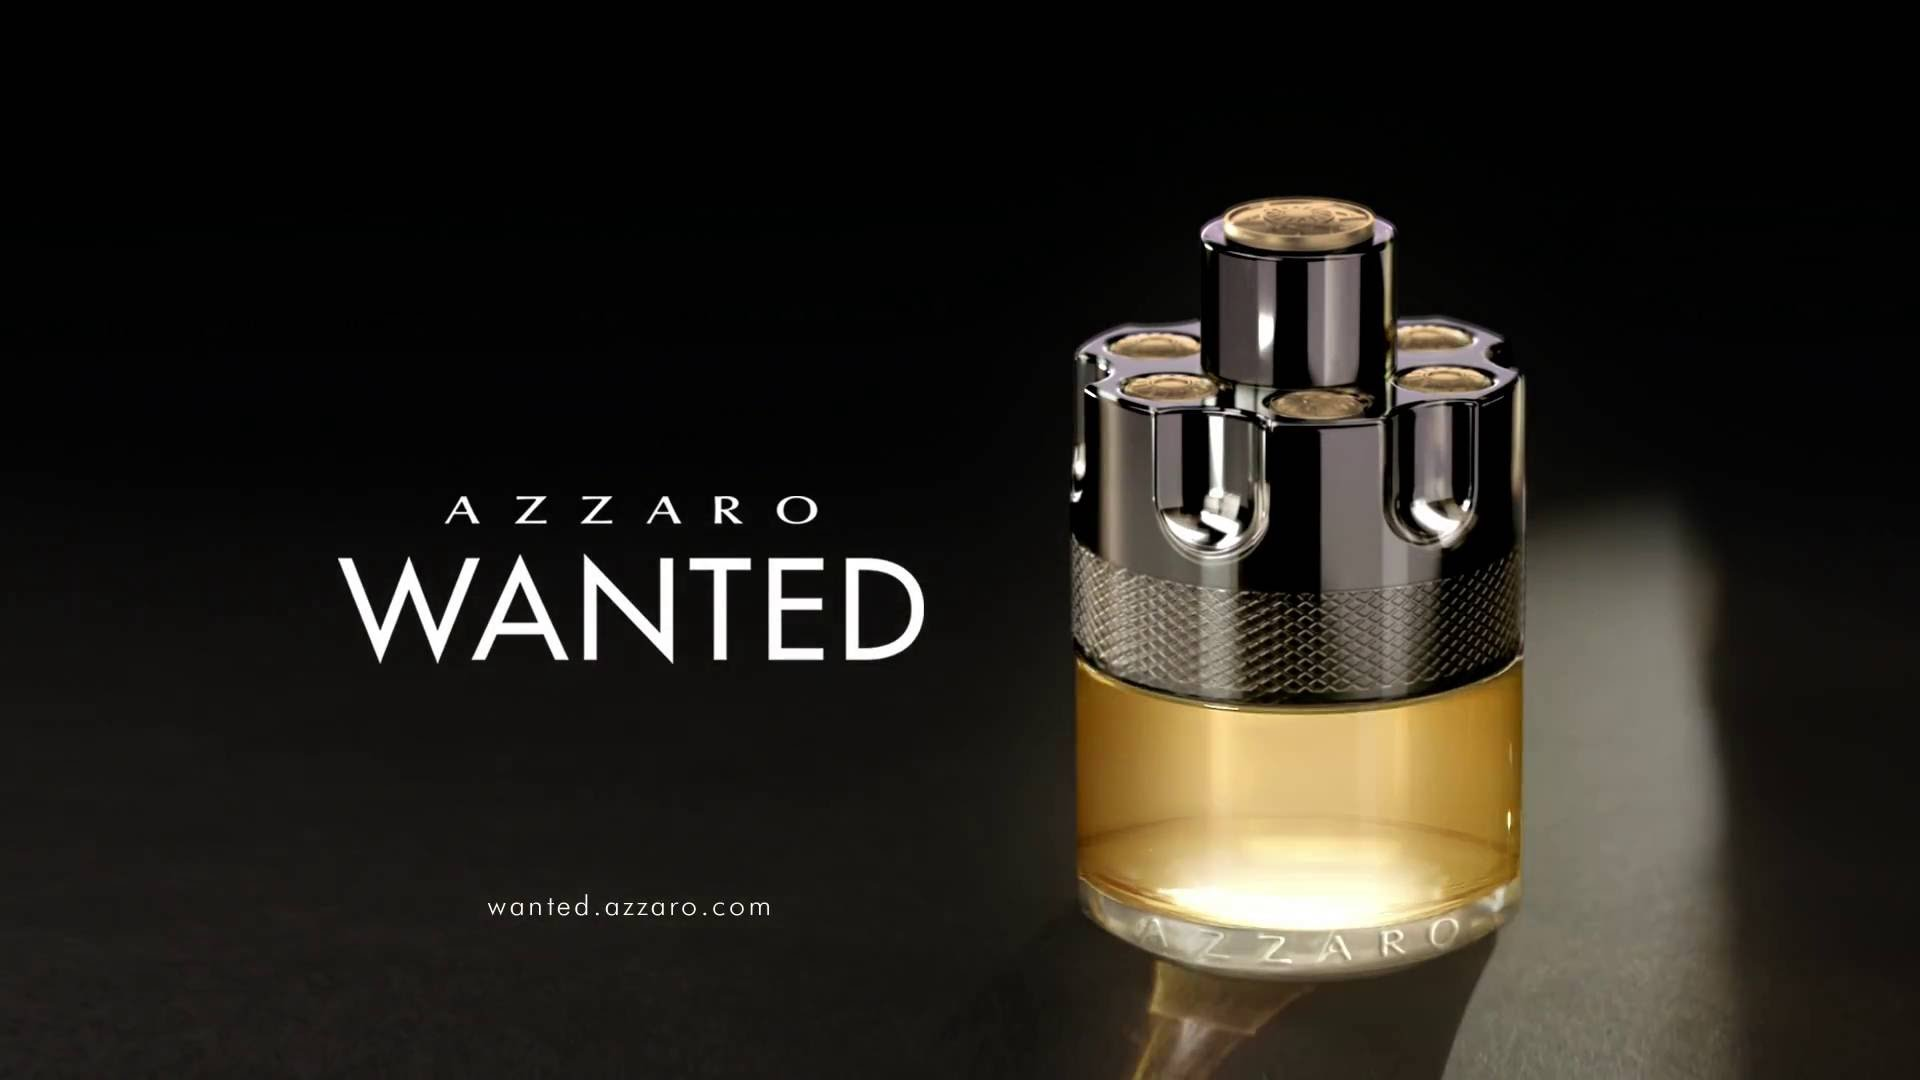 Wanted Azzaro for men